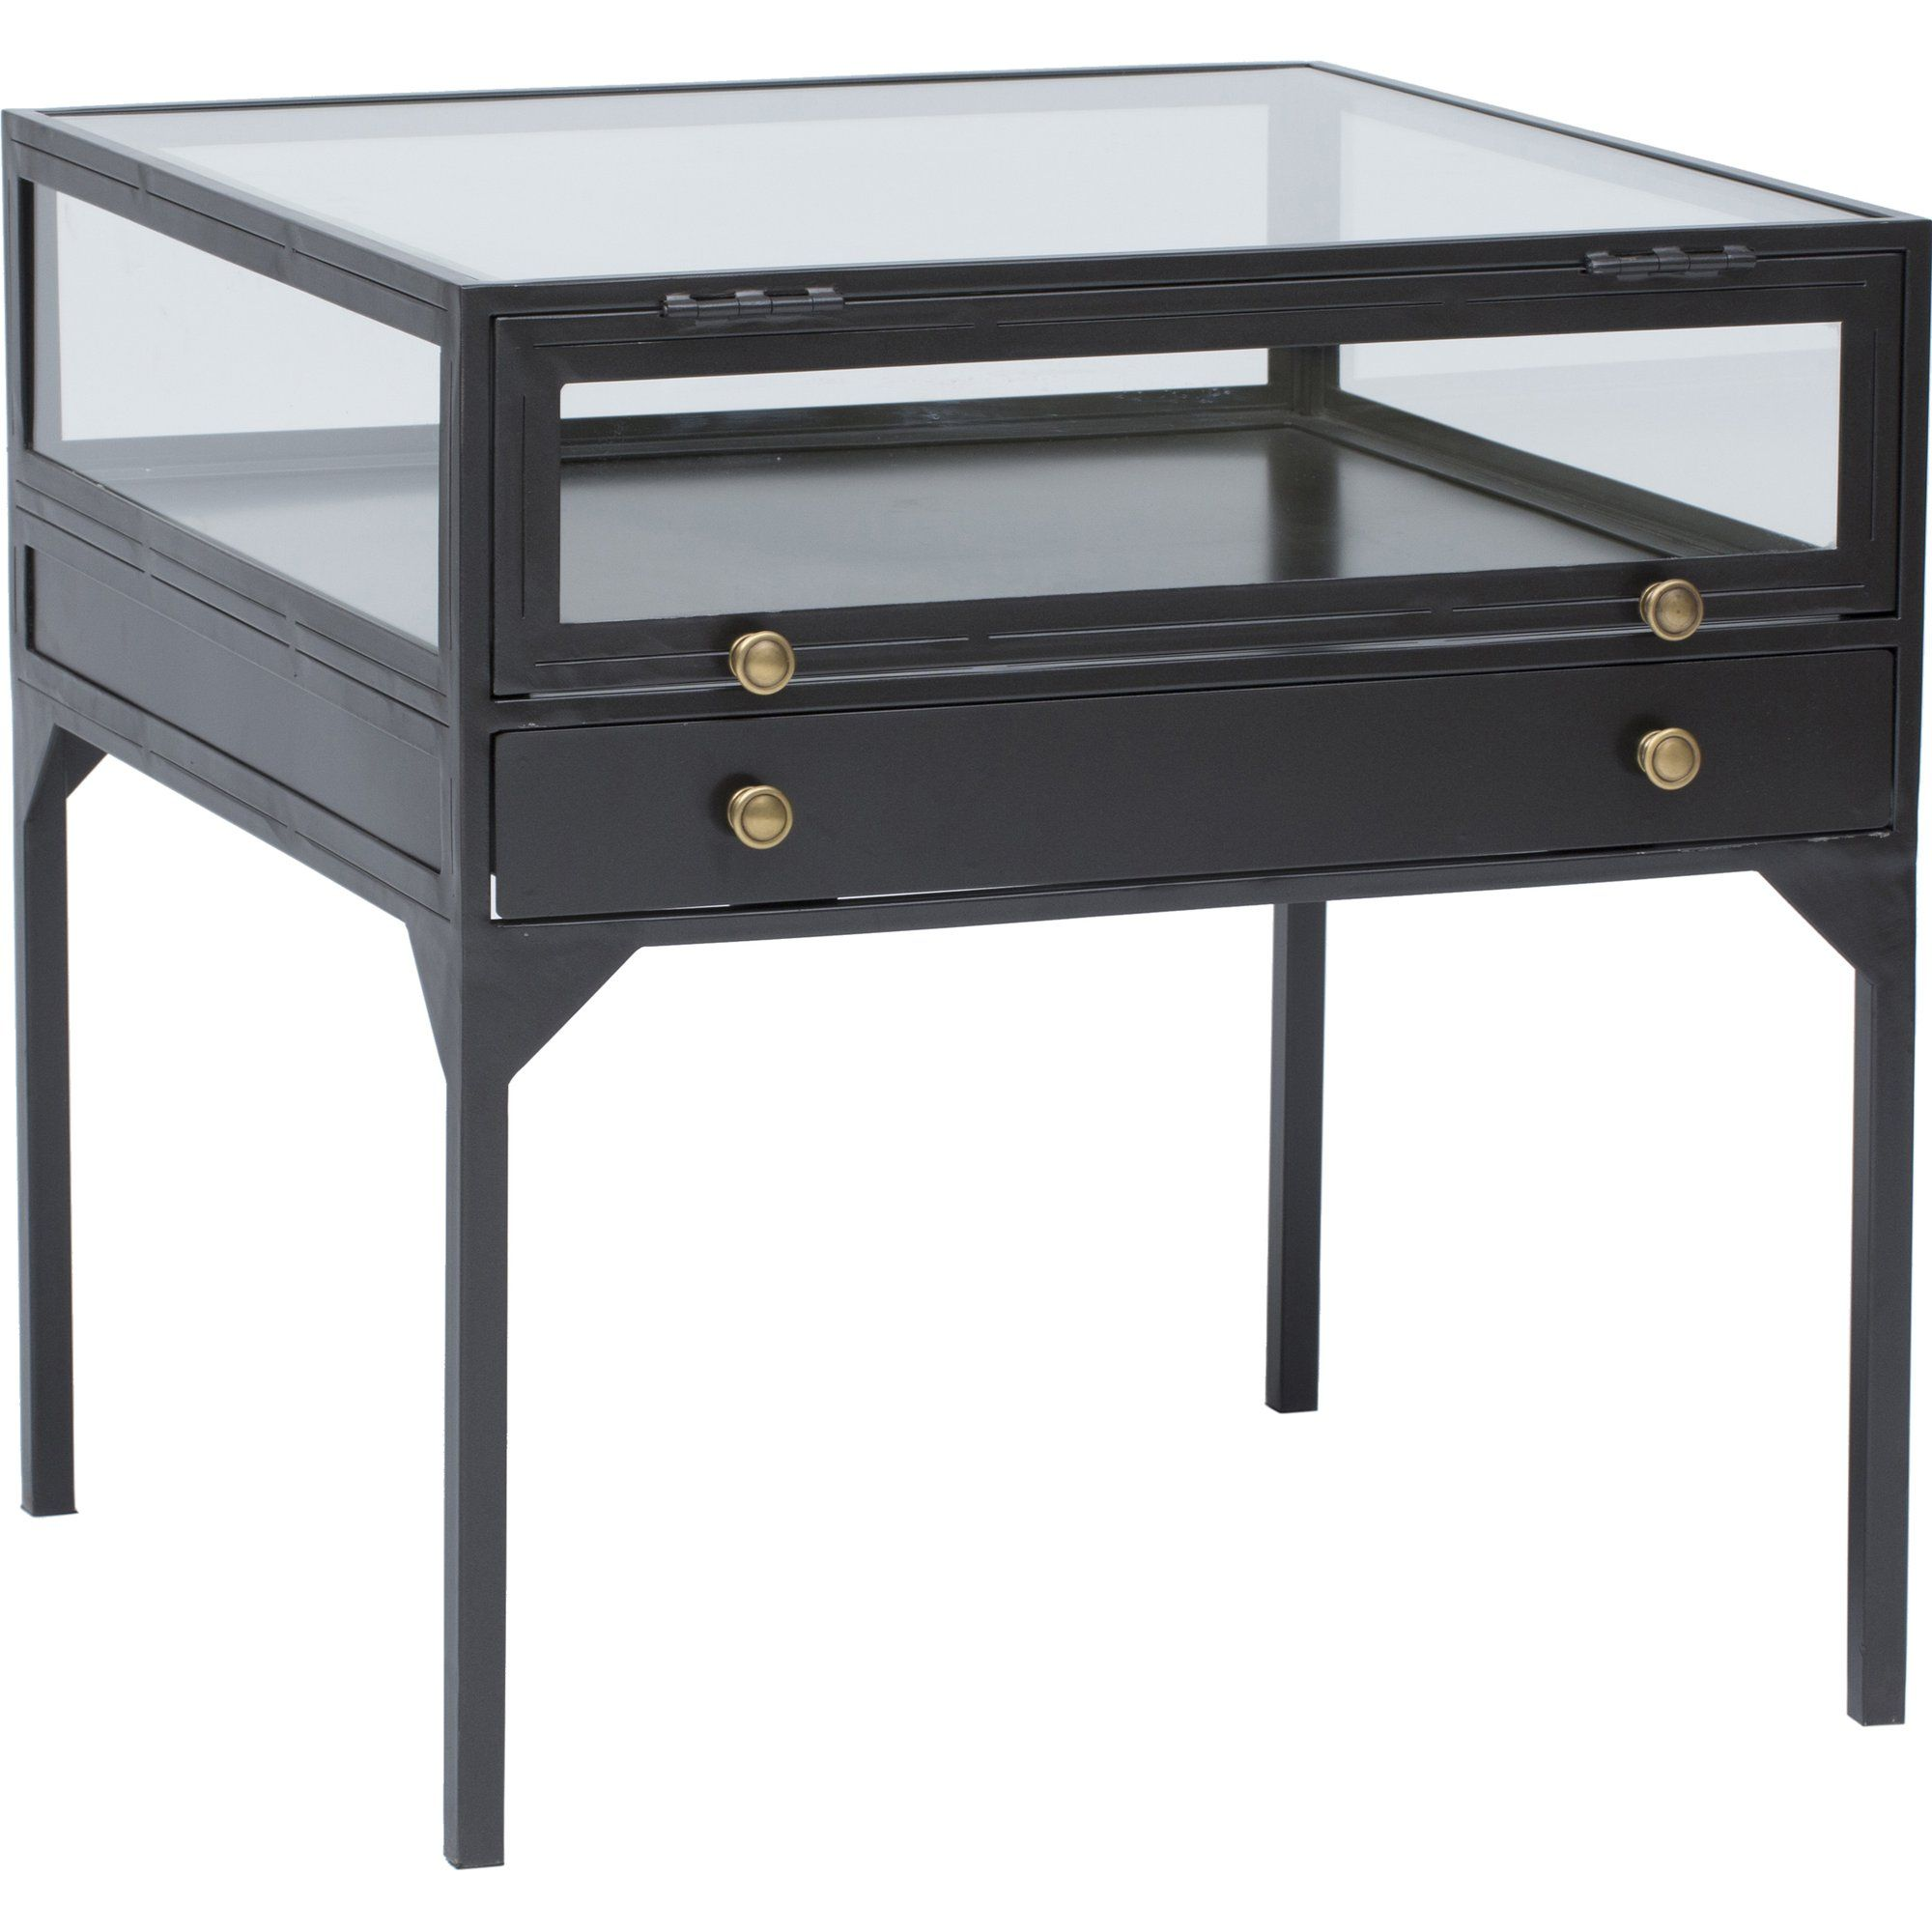 Shadow Box End Table In 2020 Shadow Box Coffee Table Glass Side Tables Modern Wood Coffee Table